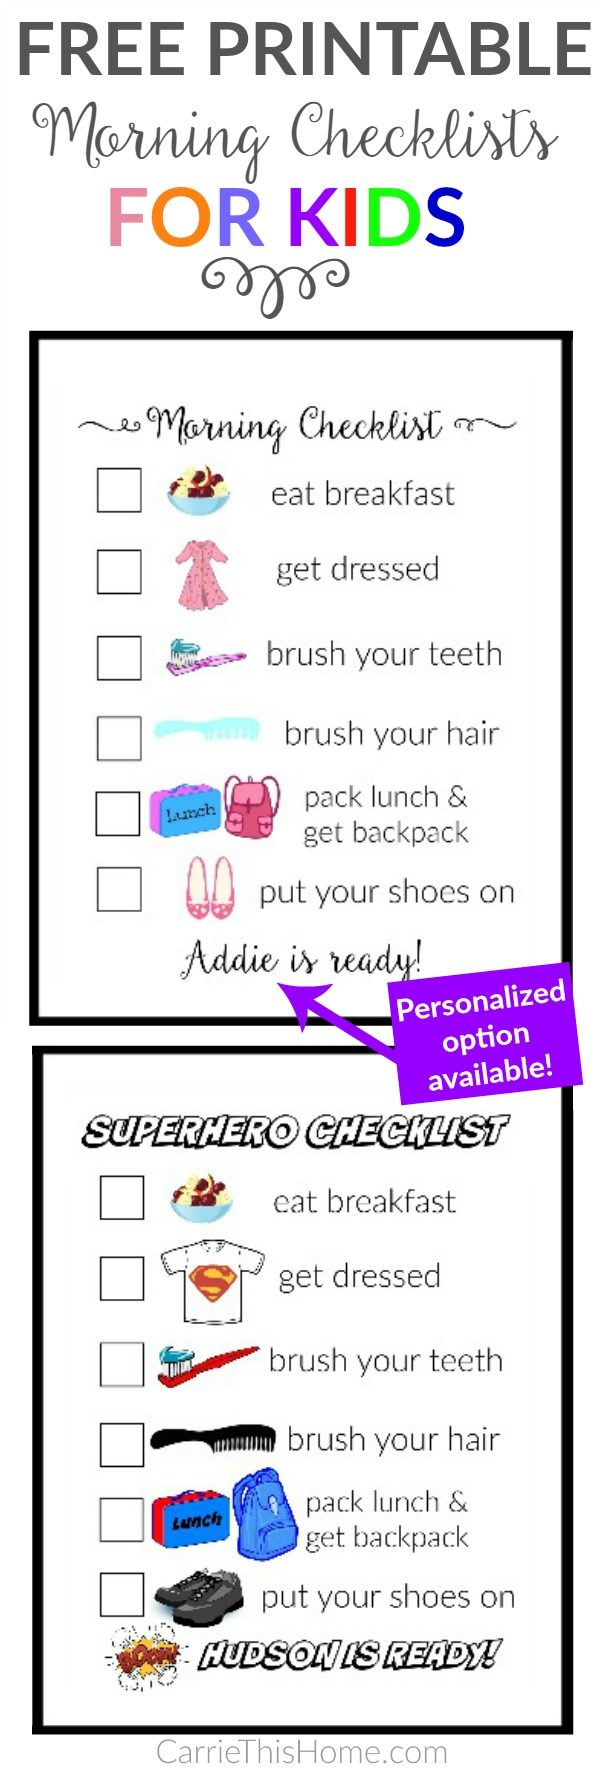 Free printable morning checklists for kids